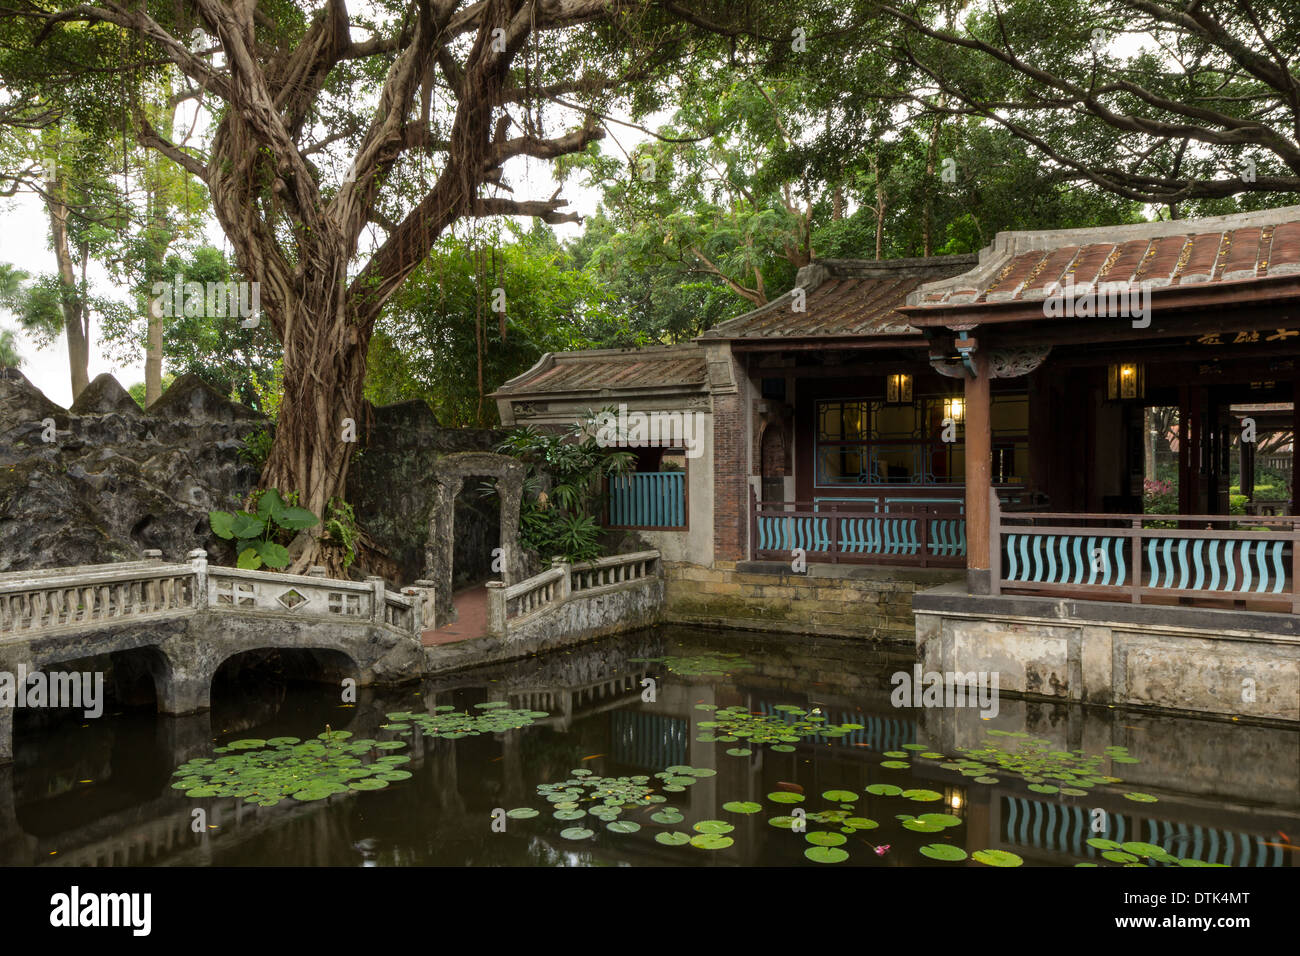 Chinese Banyan Stock Photos & Chinese Banyan Stock Images - Alamy